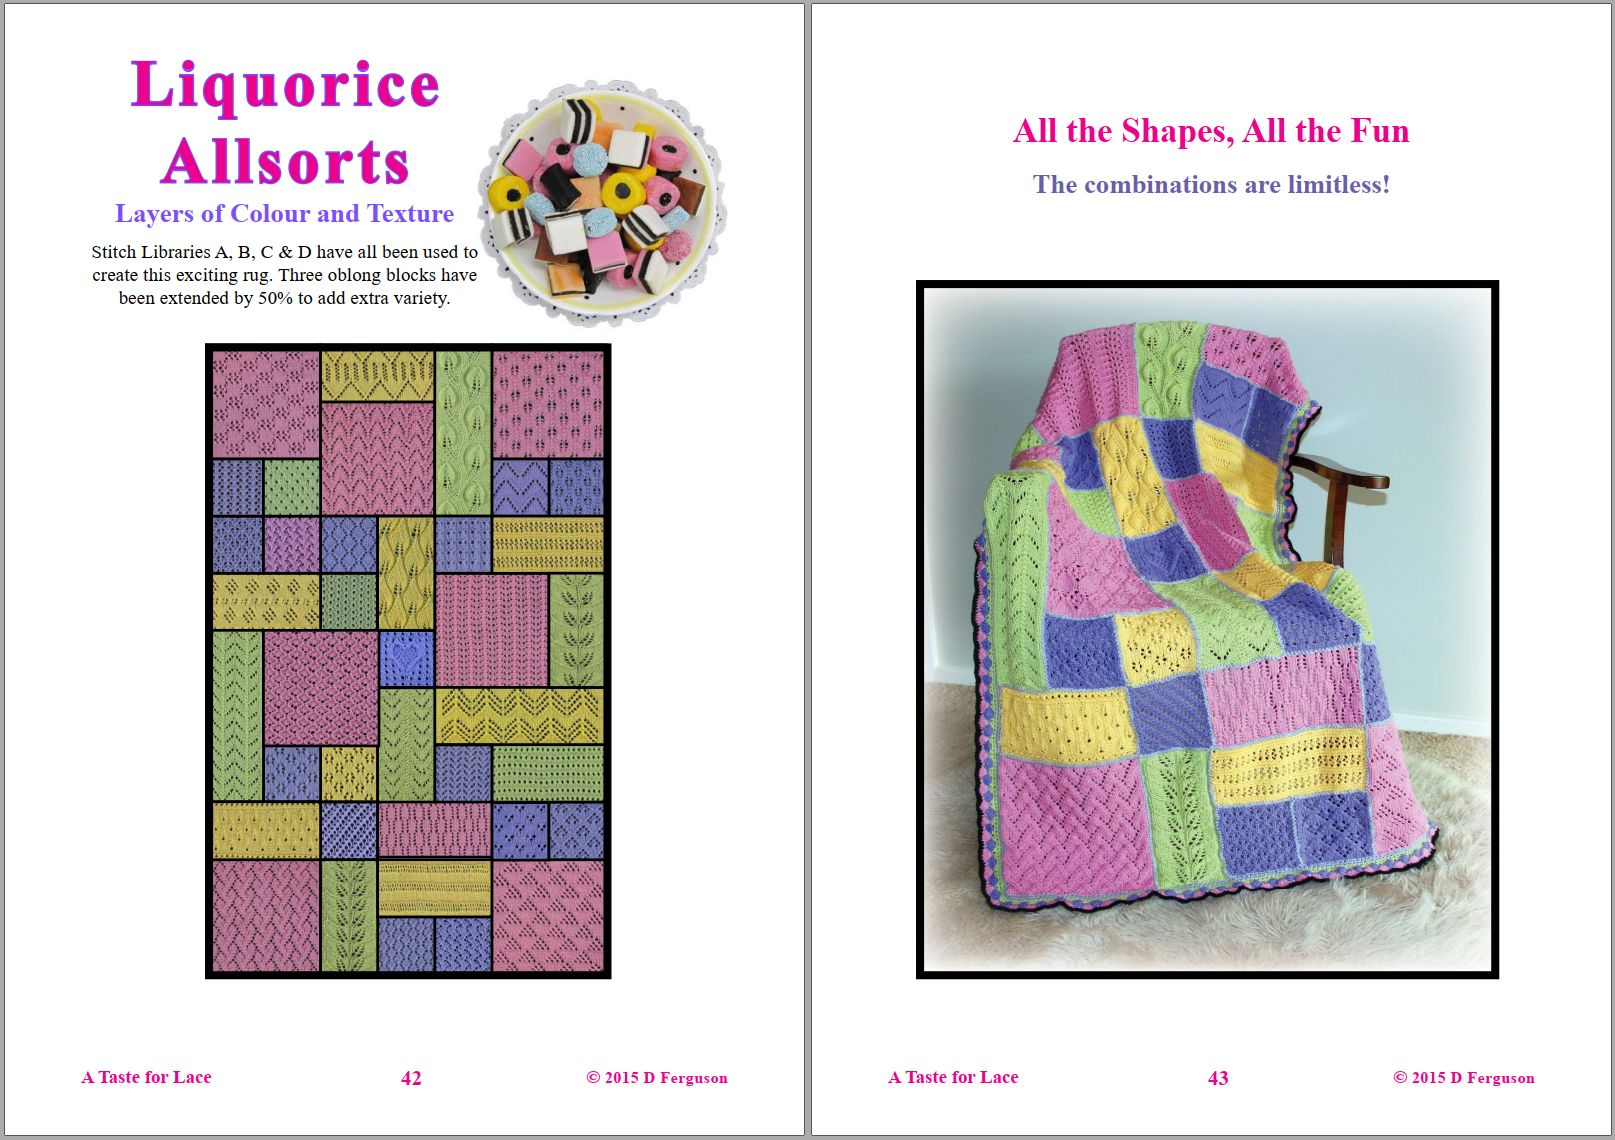 Sip Knit Yarn rug and blanket knitting lace pattern book. Page 42 and 43.